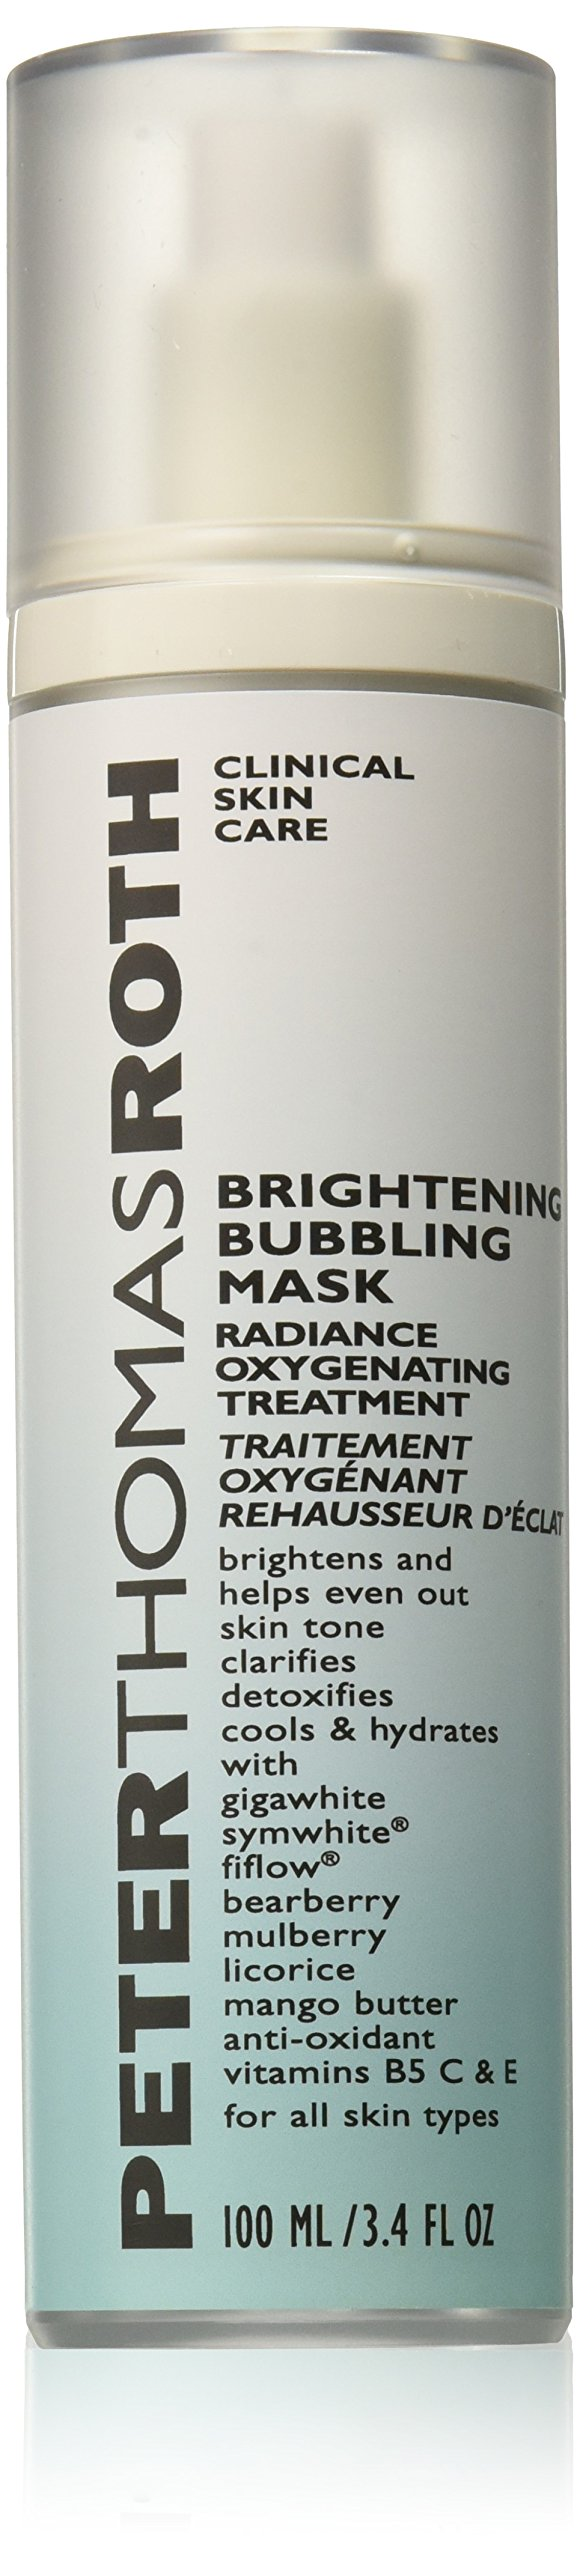 Peter Thomas Roth Brightening Bubbling Mask, 3.4 Fluid Ounce